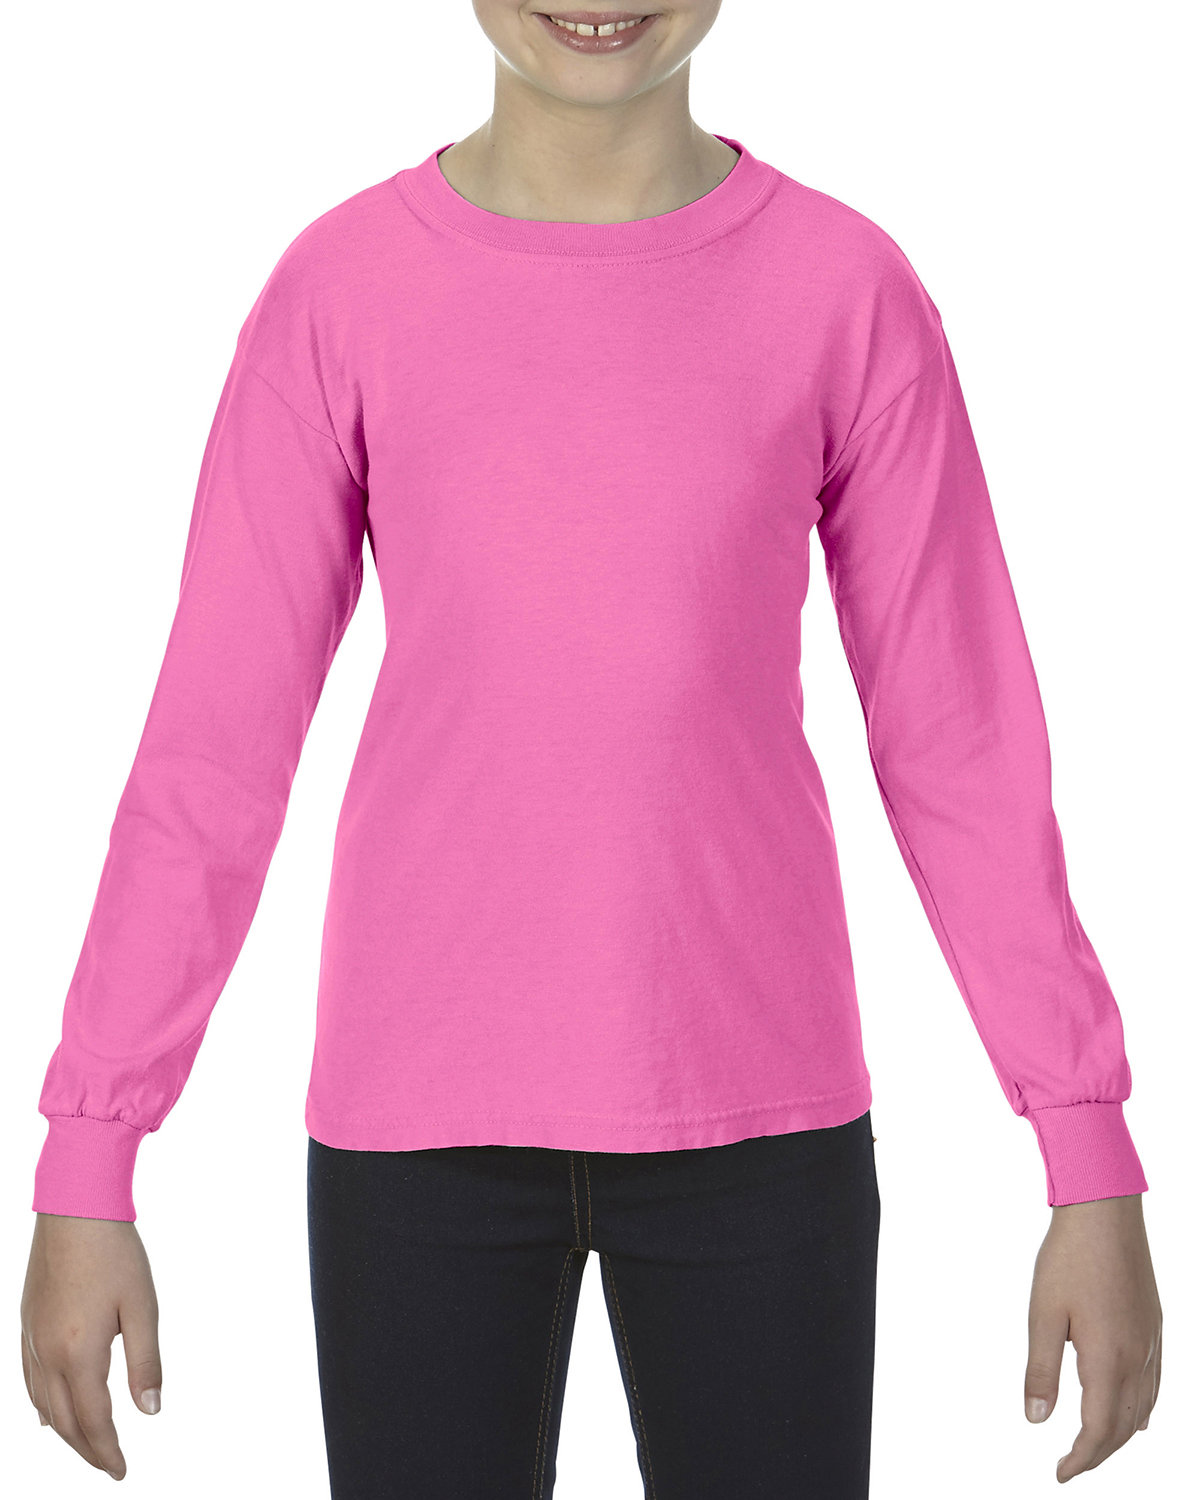 Comfort Colors Youth Garment-Dyed Long-Sleeve T-Shirt PEONY